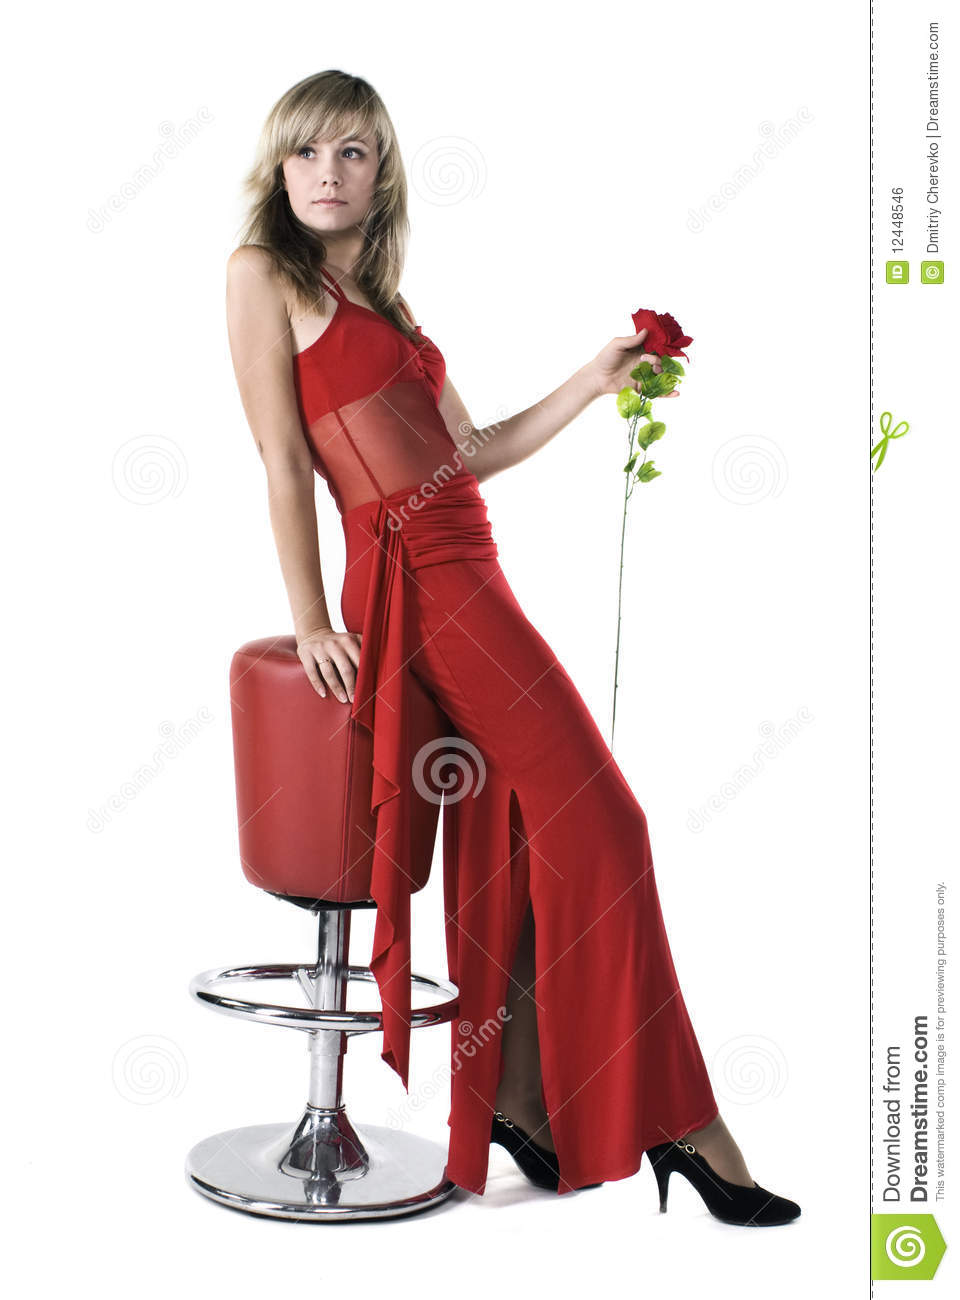 beautiful lady in red dress stock photo image of indoor lady 12448546. Black Bedroom Furniture Sets. Home Design Ideas